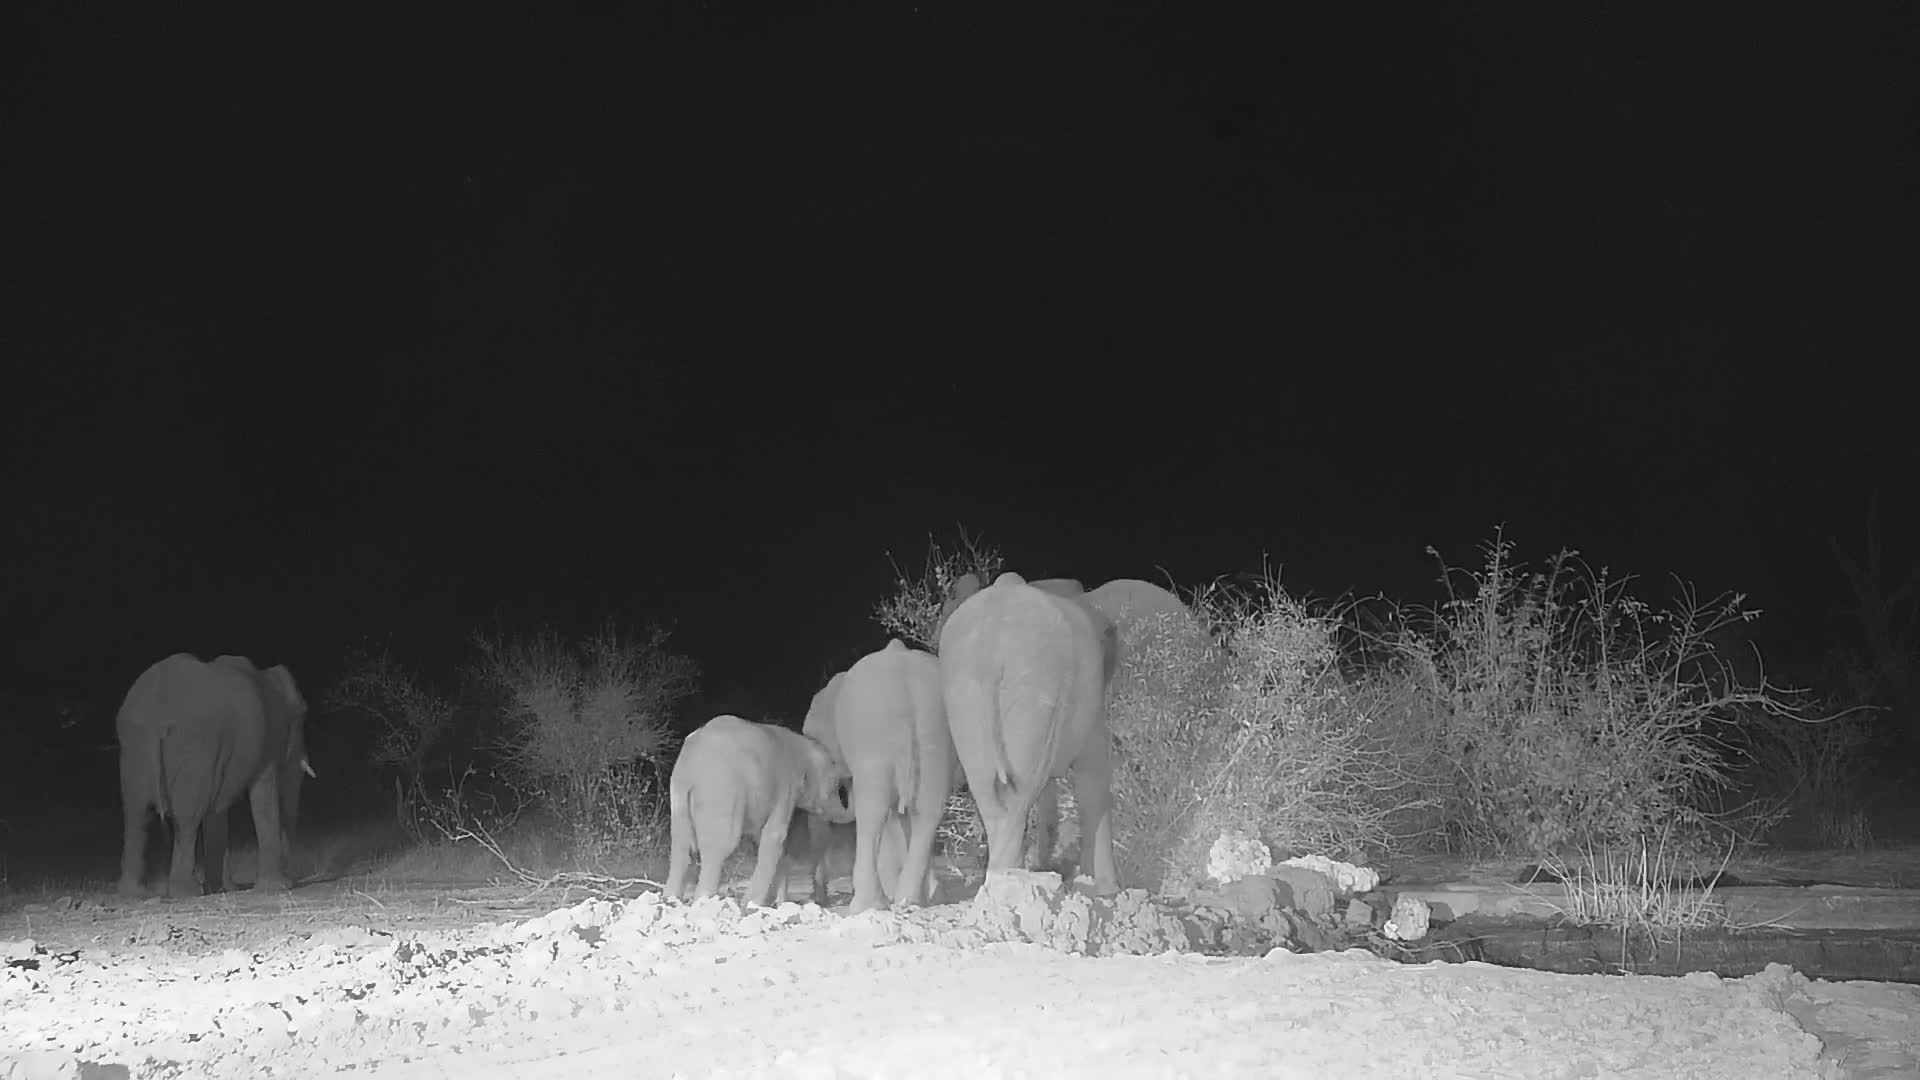 VIDEO: Elephants come for a drink